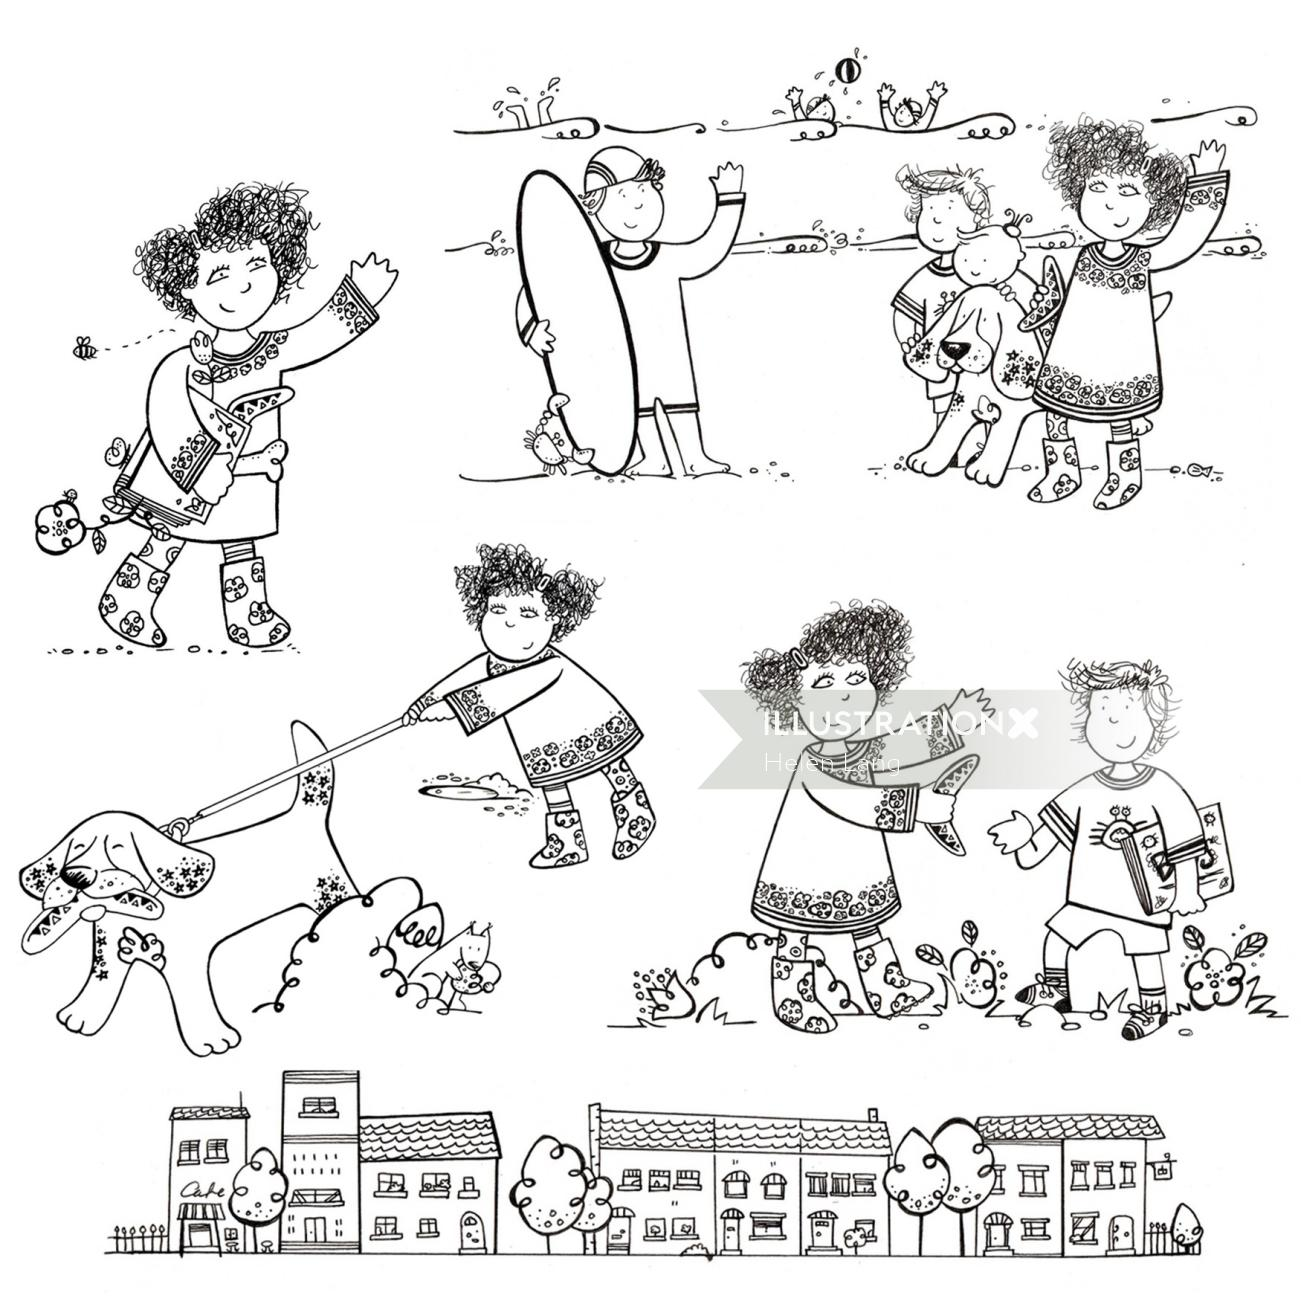 Illustration of characters in a story